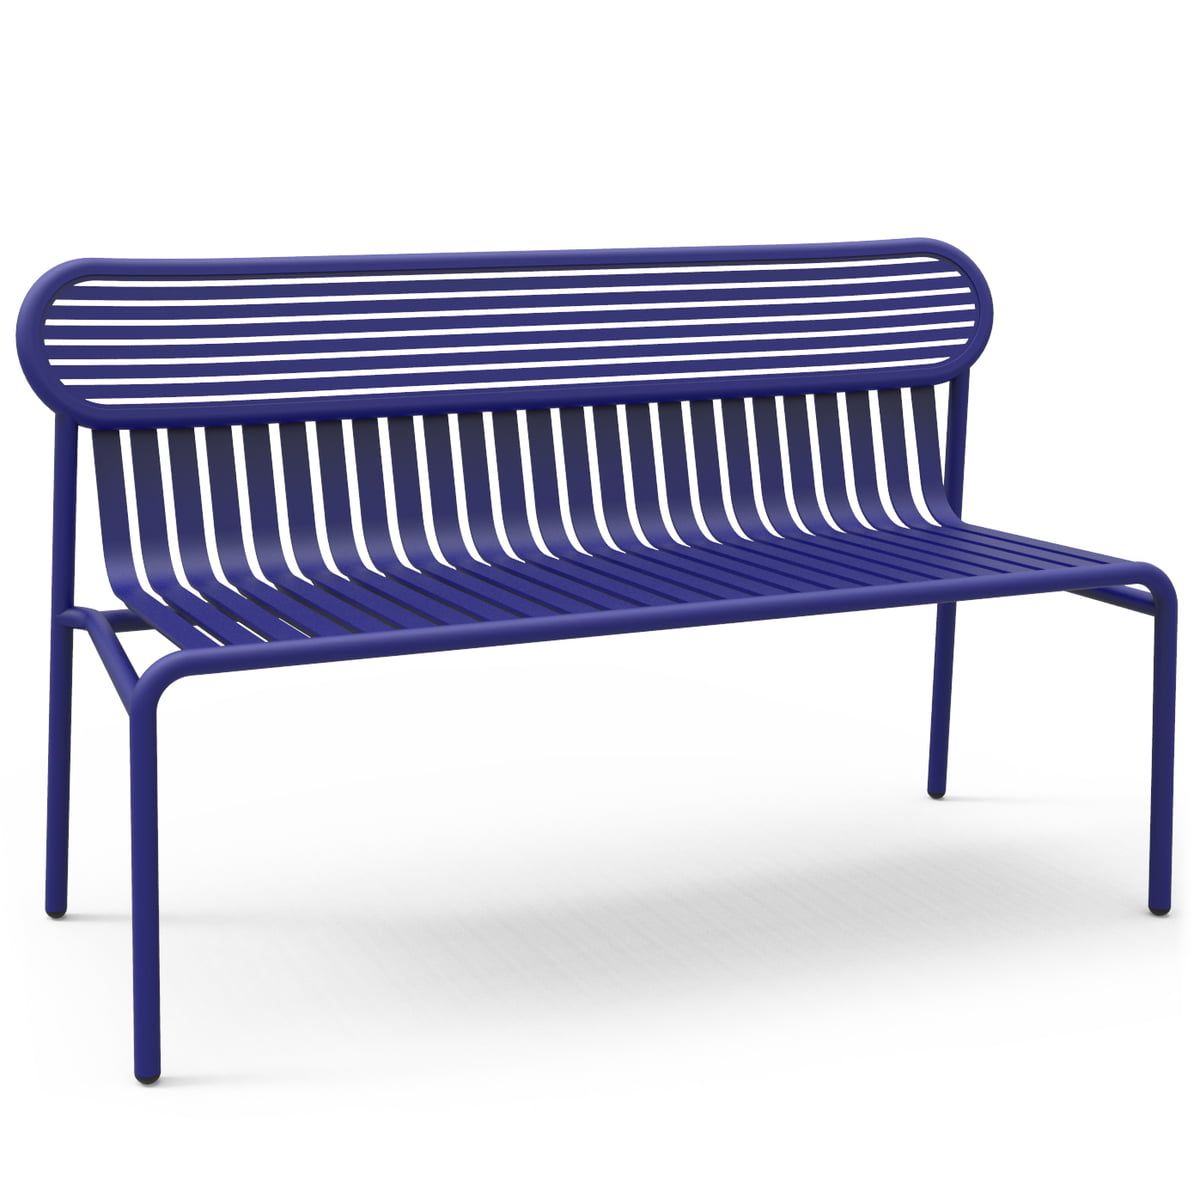 week end garden bench by petite friture connox. Black Bedroom Furniture Sets. Home Design Ideas